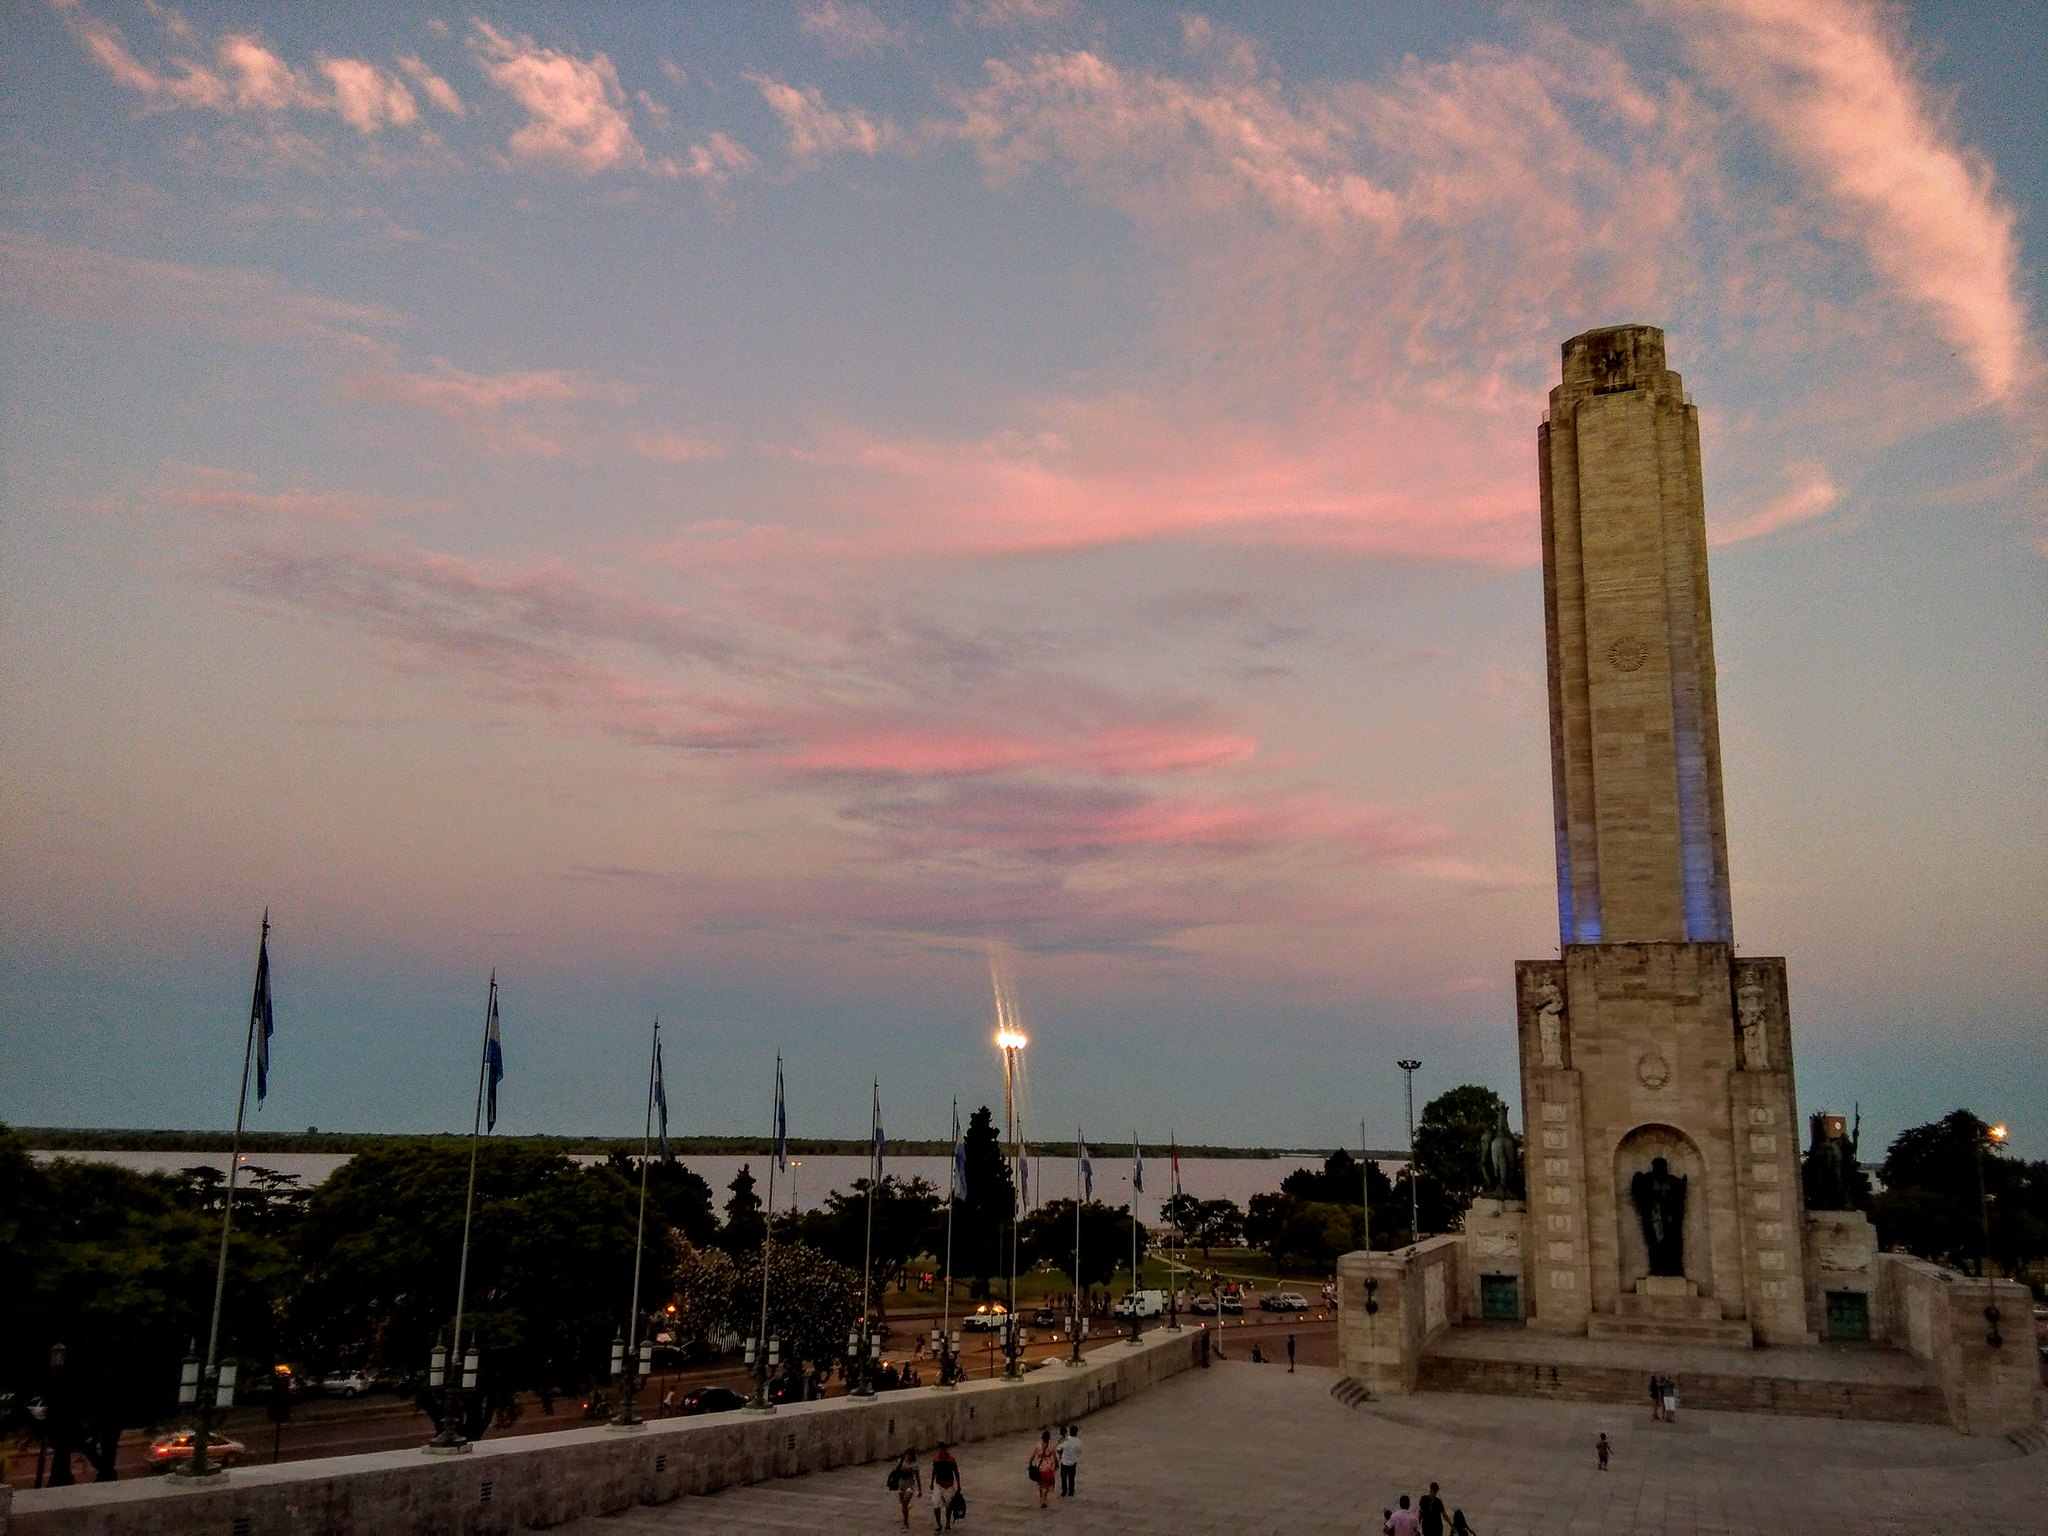 Monumento a la Bandera at sunset from last night